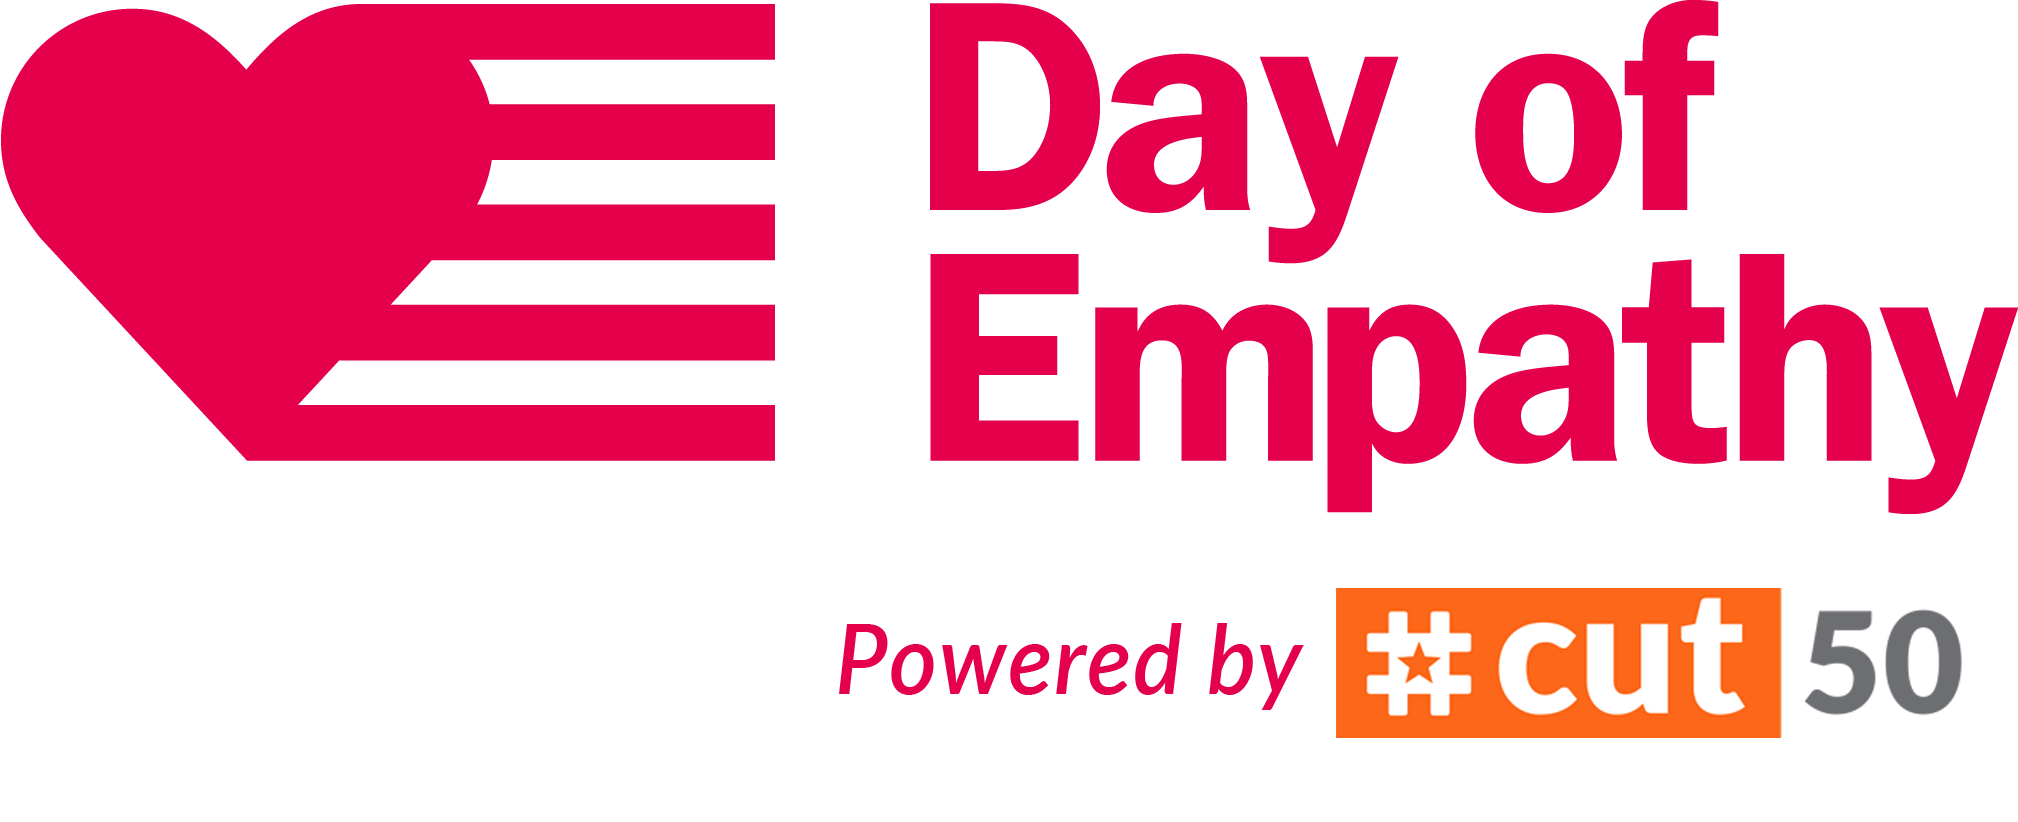 Day of Action - #DayOfEmpathy